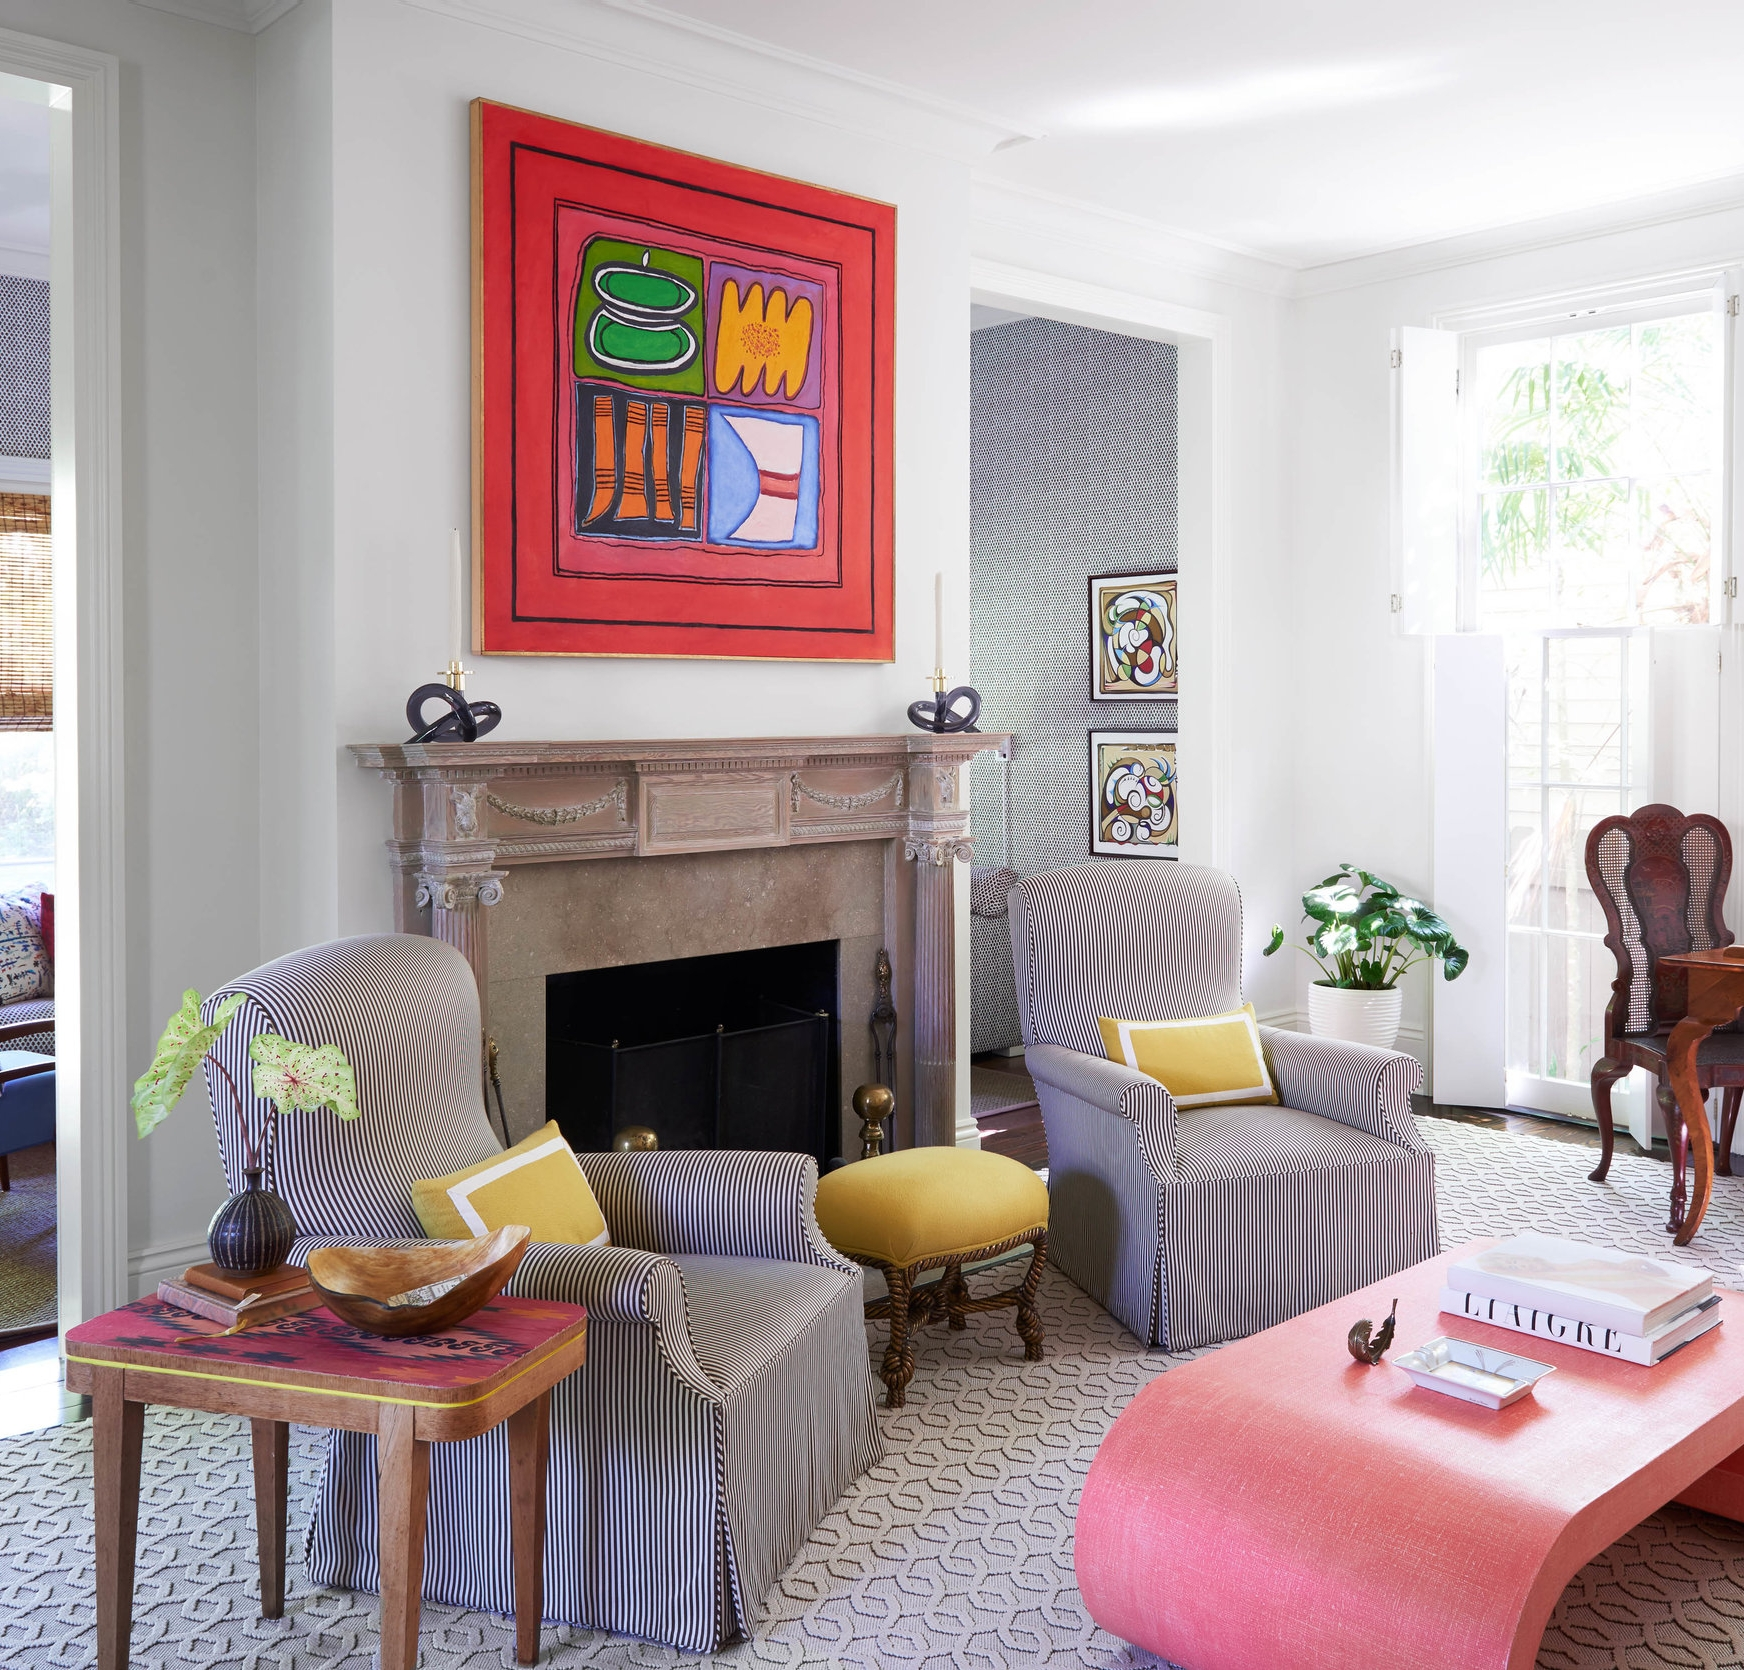 Swivel chairs face a custom-glazed Karl Springer coffee table beneath a painting by the Louisiana artist Ida Kohlmeyer in the Massengale family's living room.